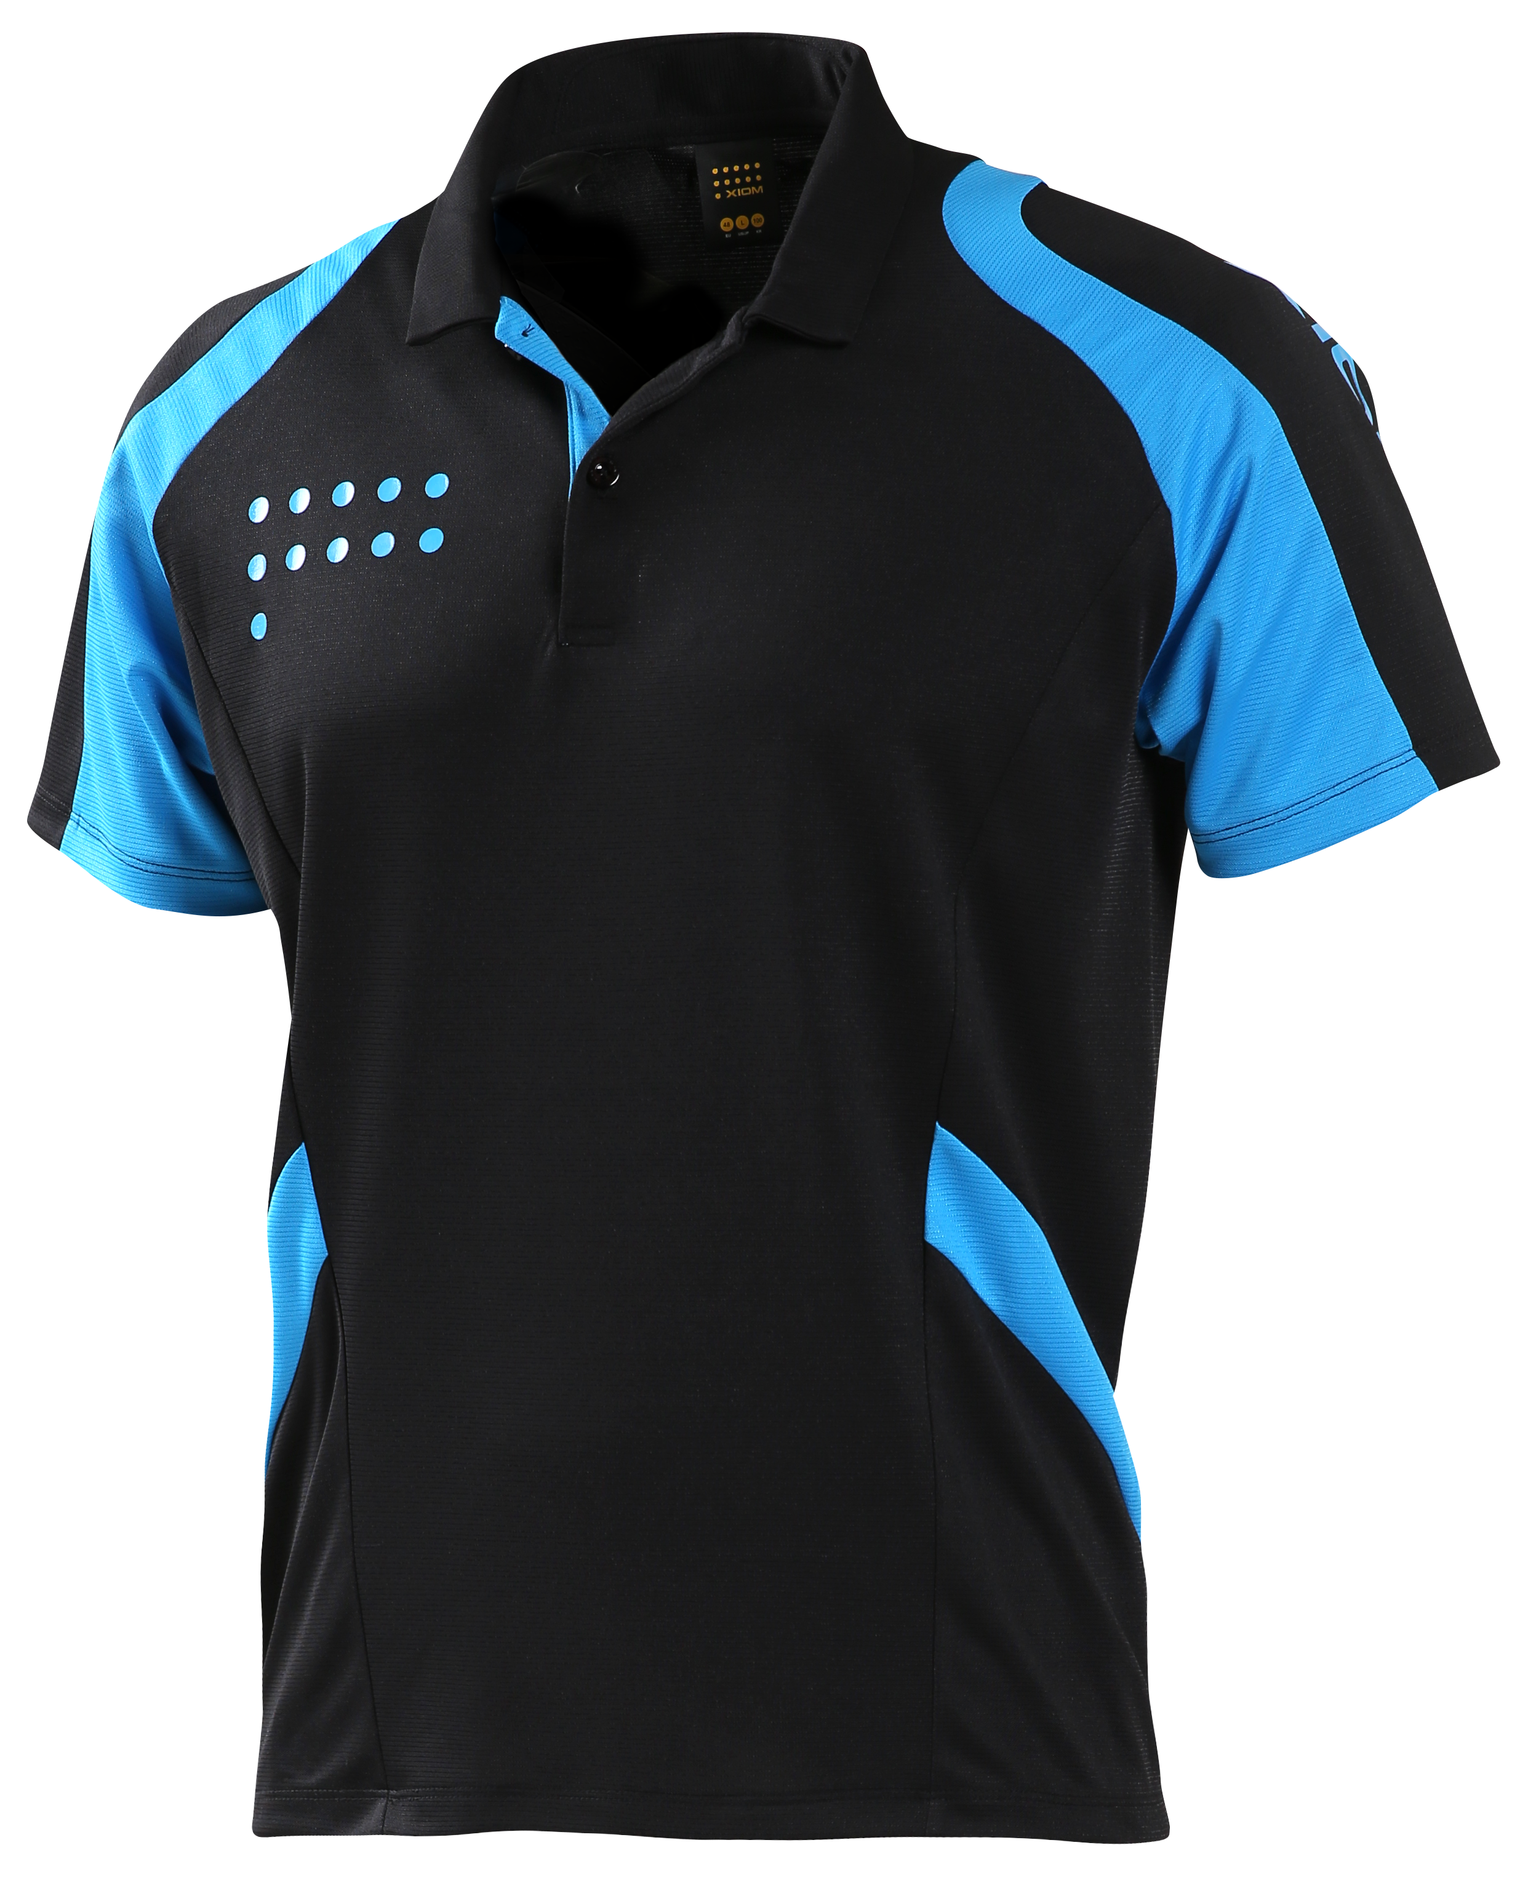 af6733f7 Xiom Shirt James black/blue | Shirts | Clothing | Tabletennis11.com (TT11